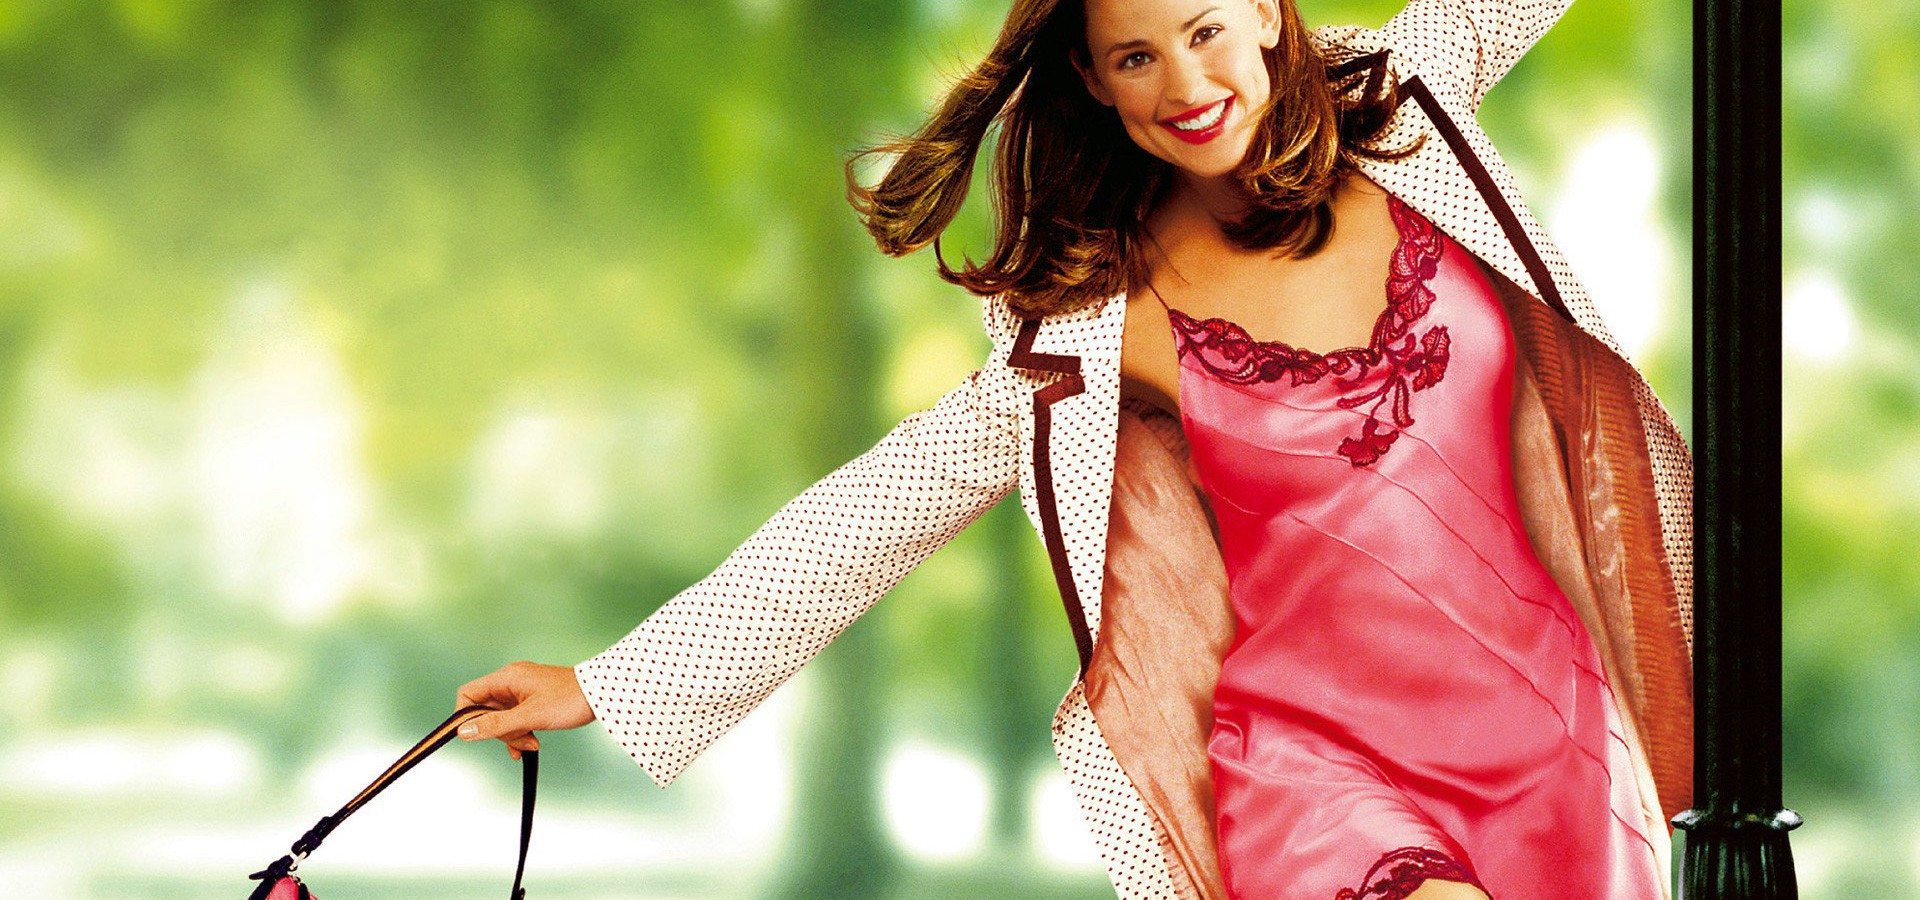 13 Going on 30